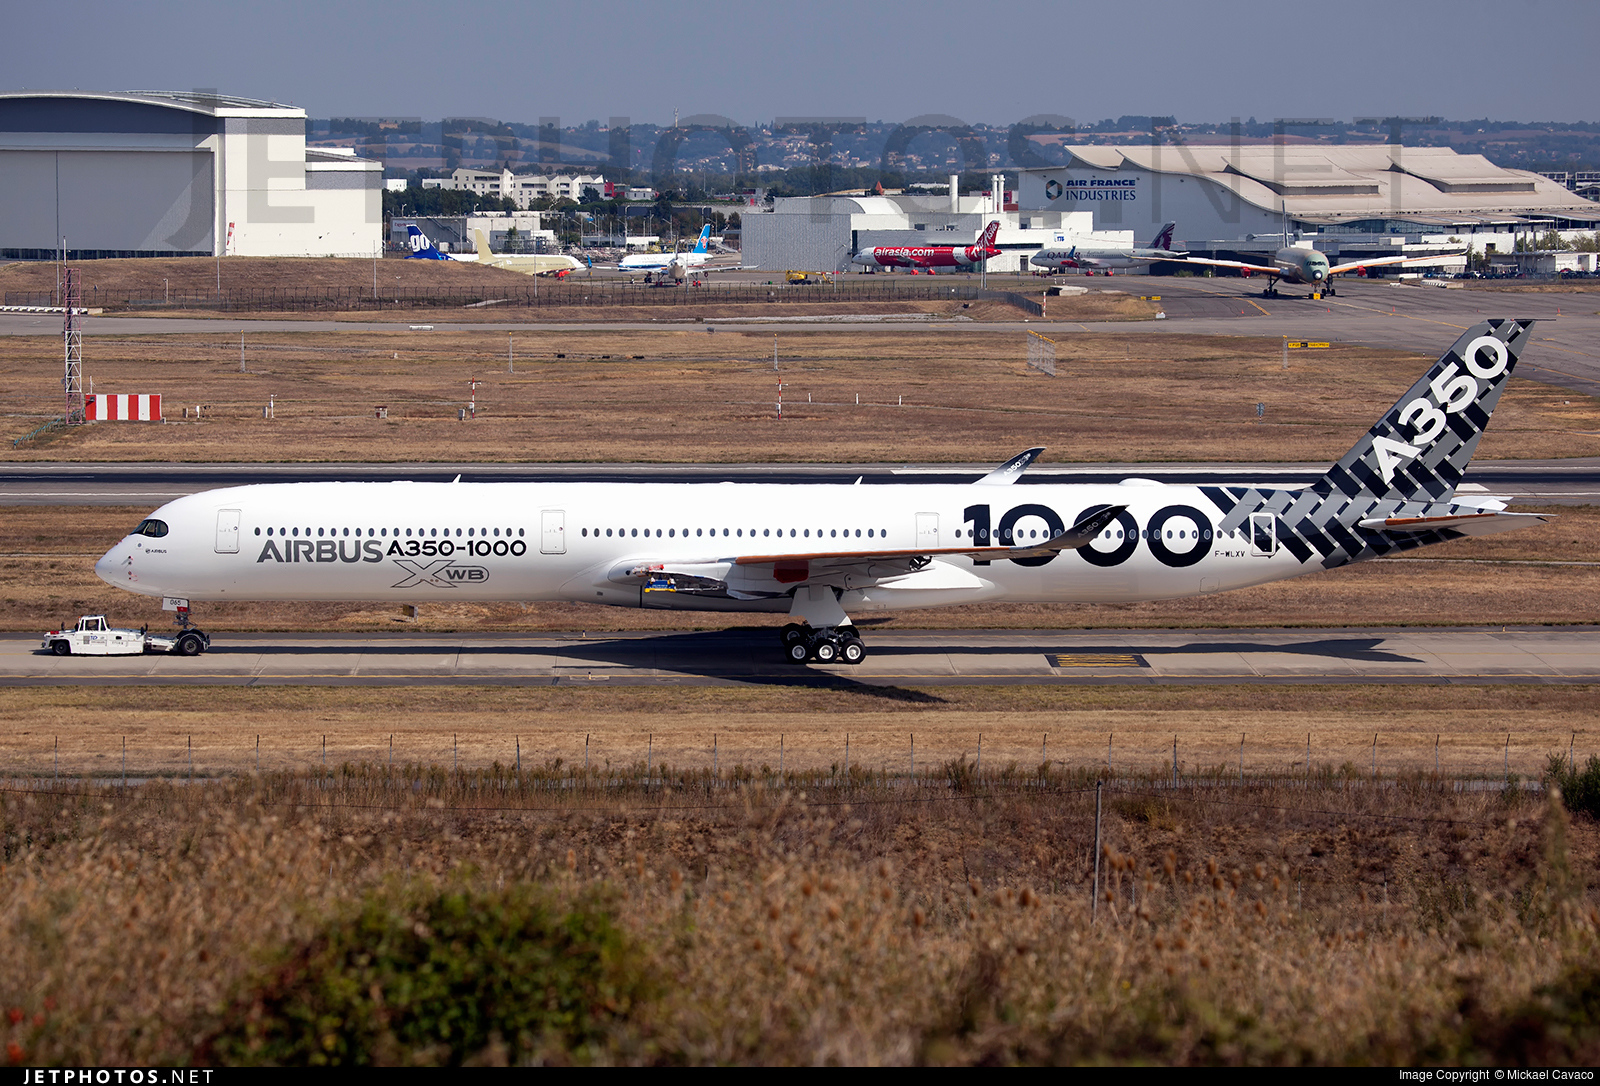 A350-1000 MSN 065, the second A350-1000 test aircraft